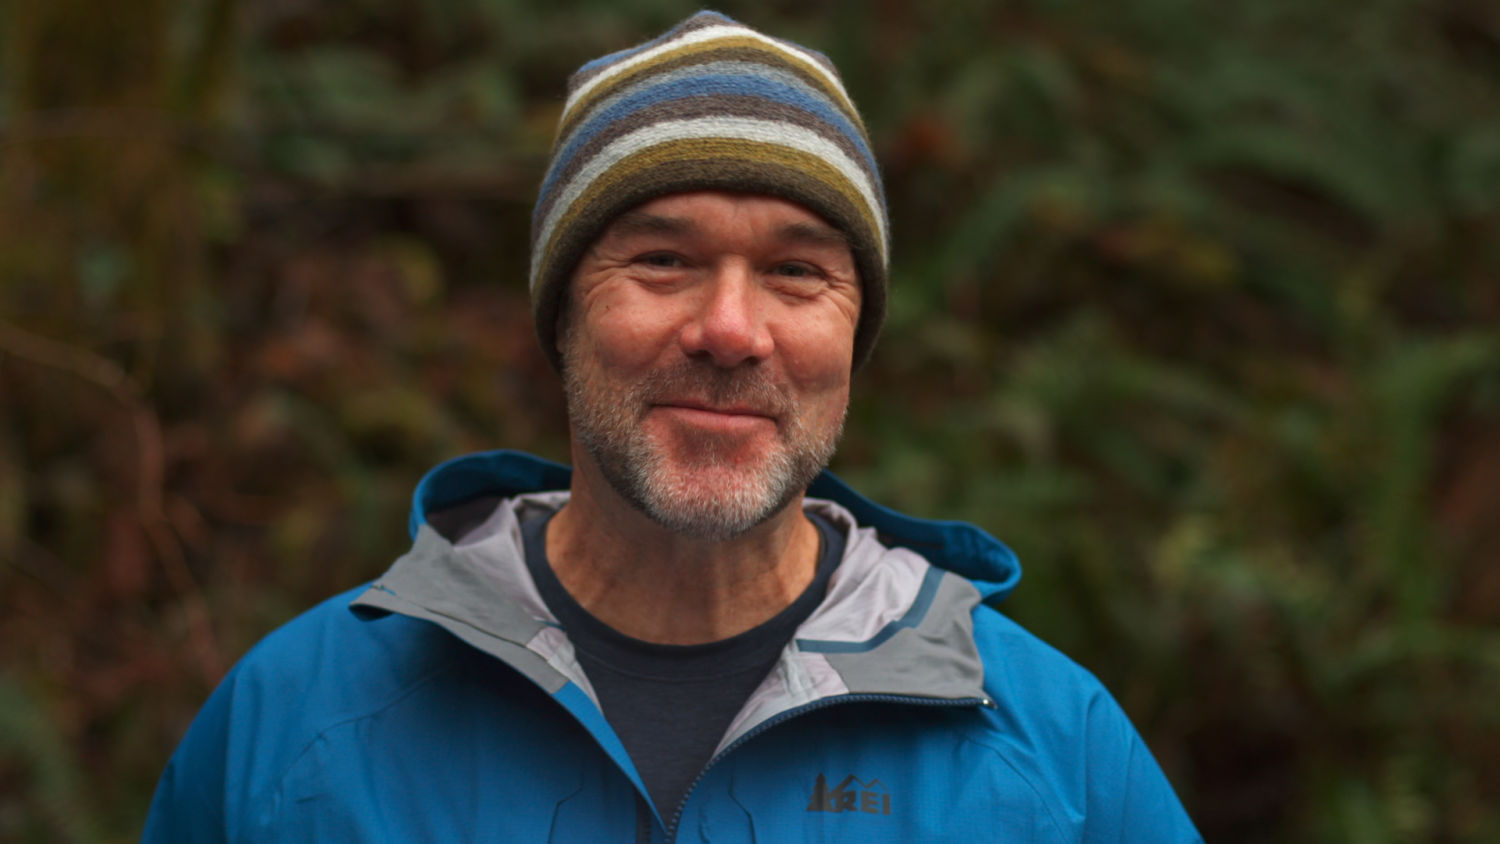 REI CEO Jerry Stritzke Resigns Amid Investigation